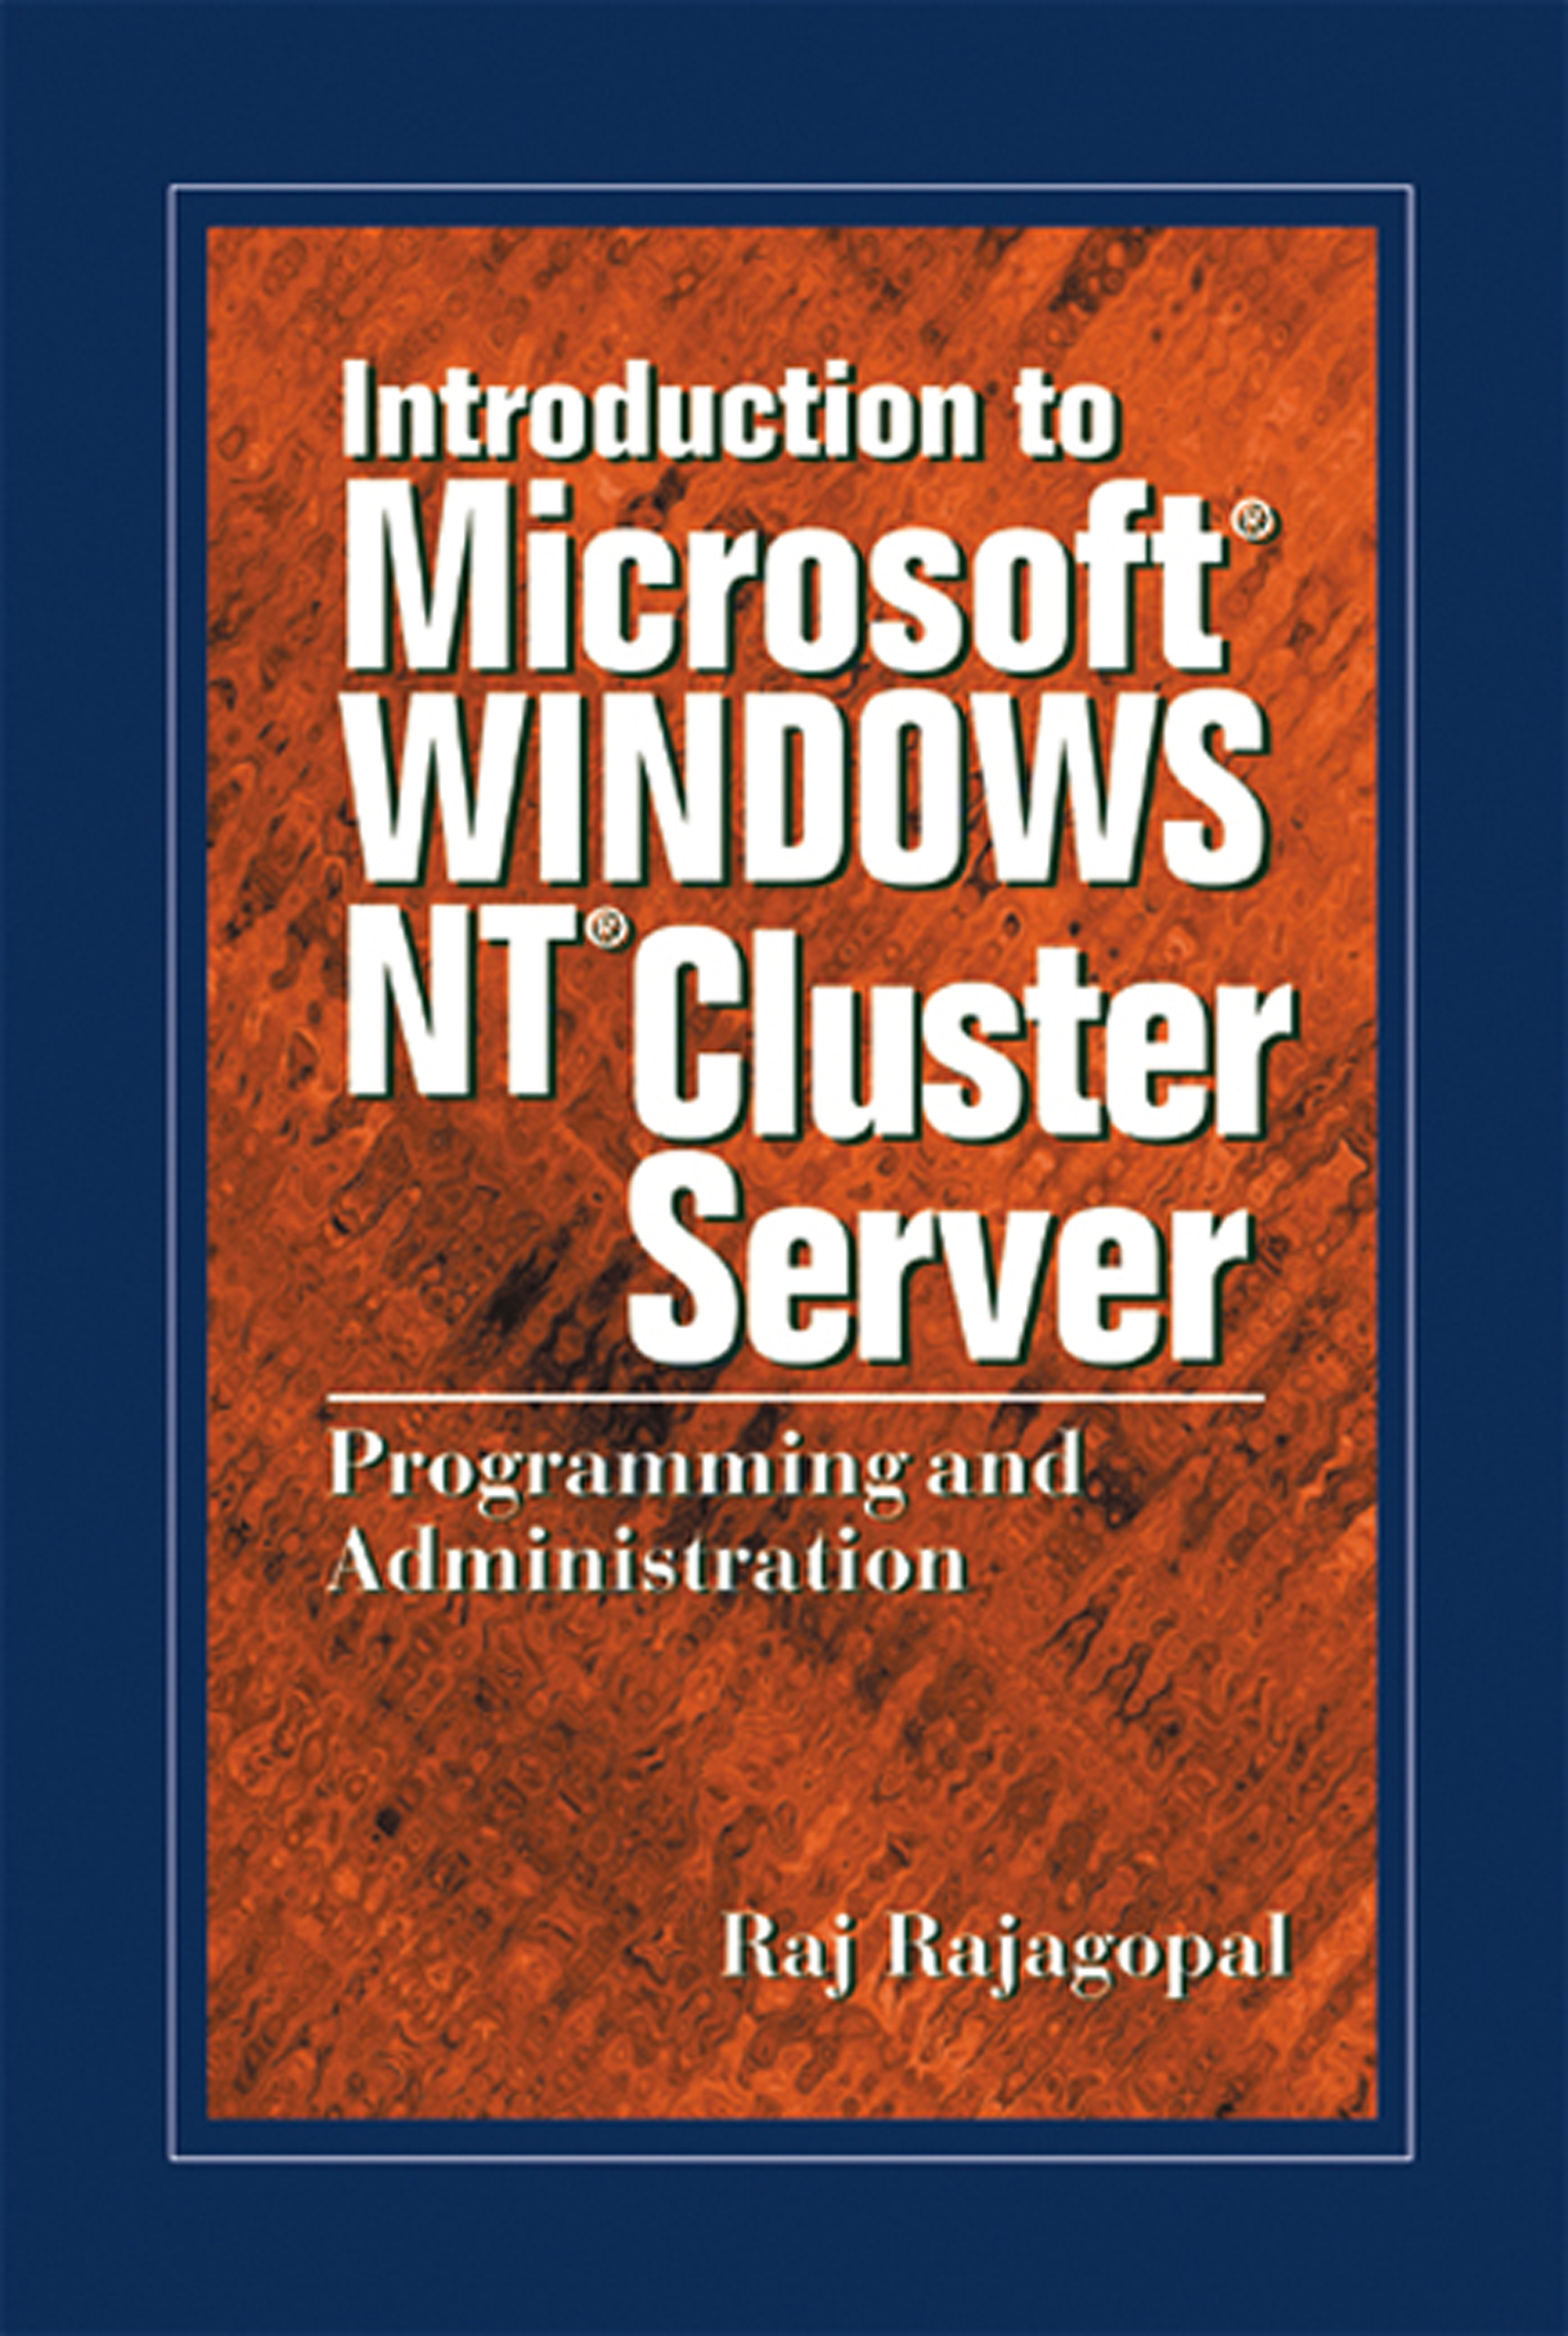 Download Ebook Introduction to Microsoft Windows NT Cluster Server by Raj Rajagopal Pdf